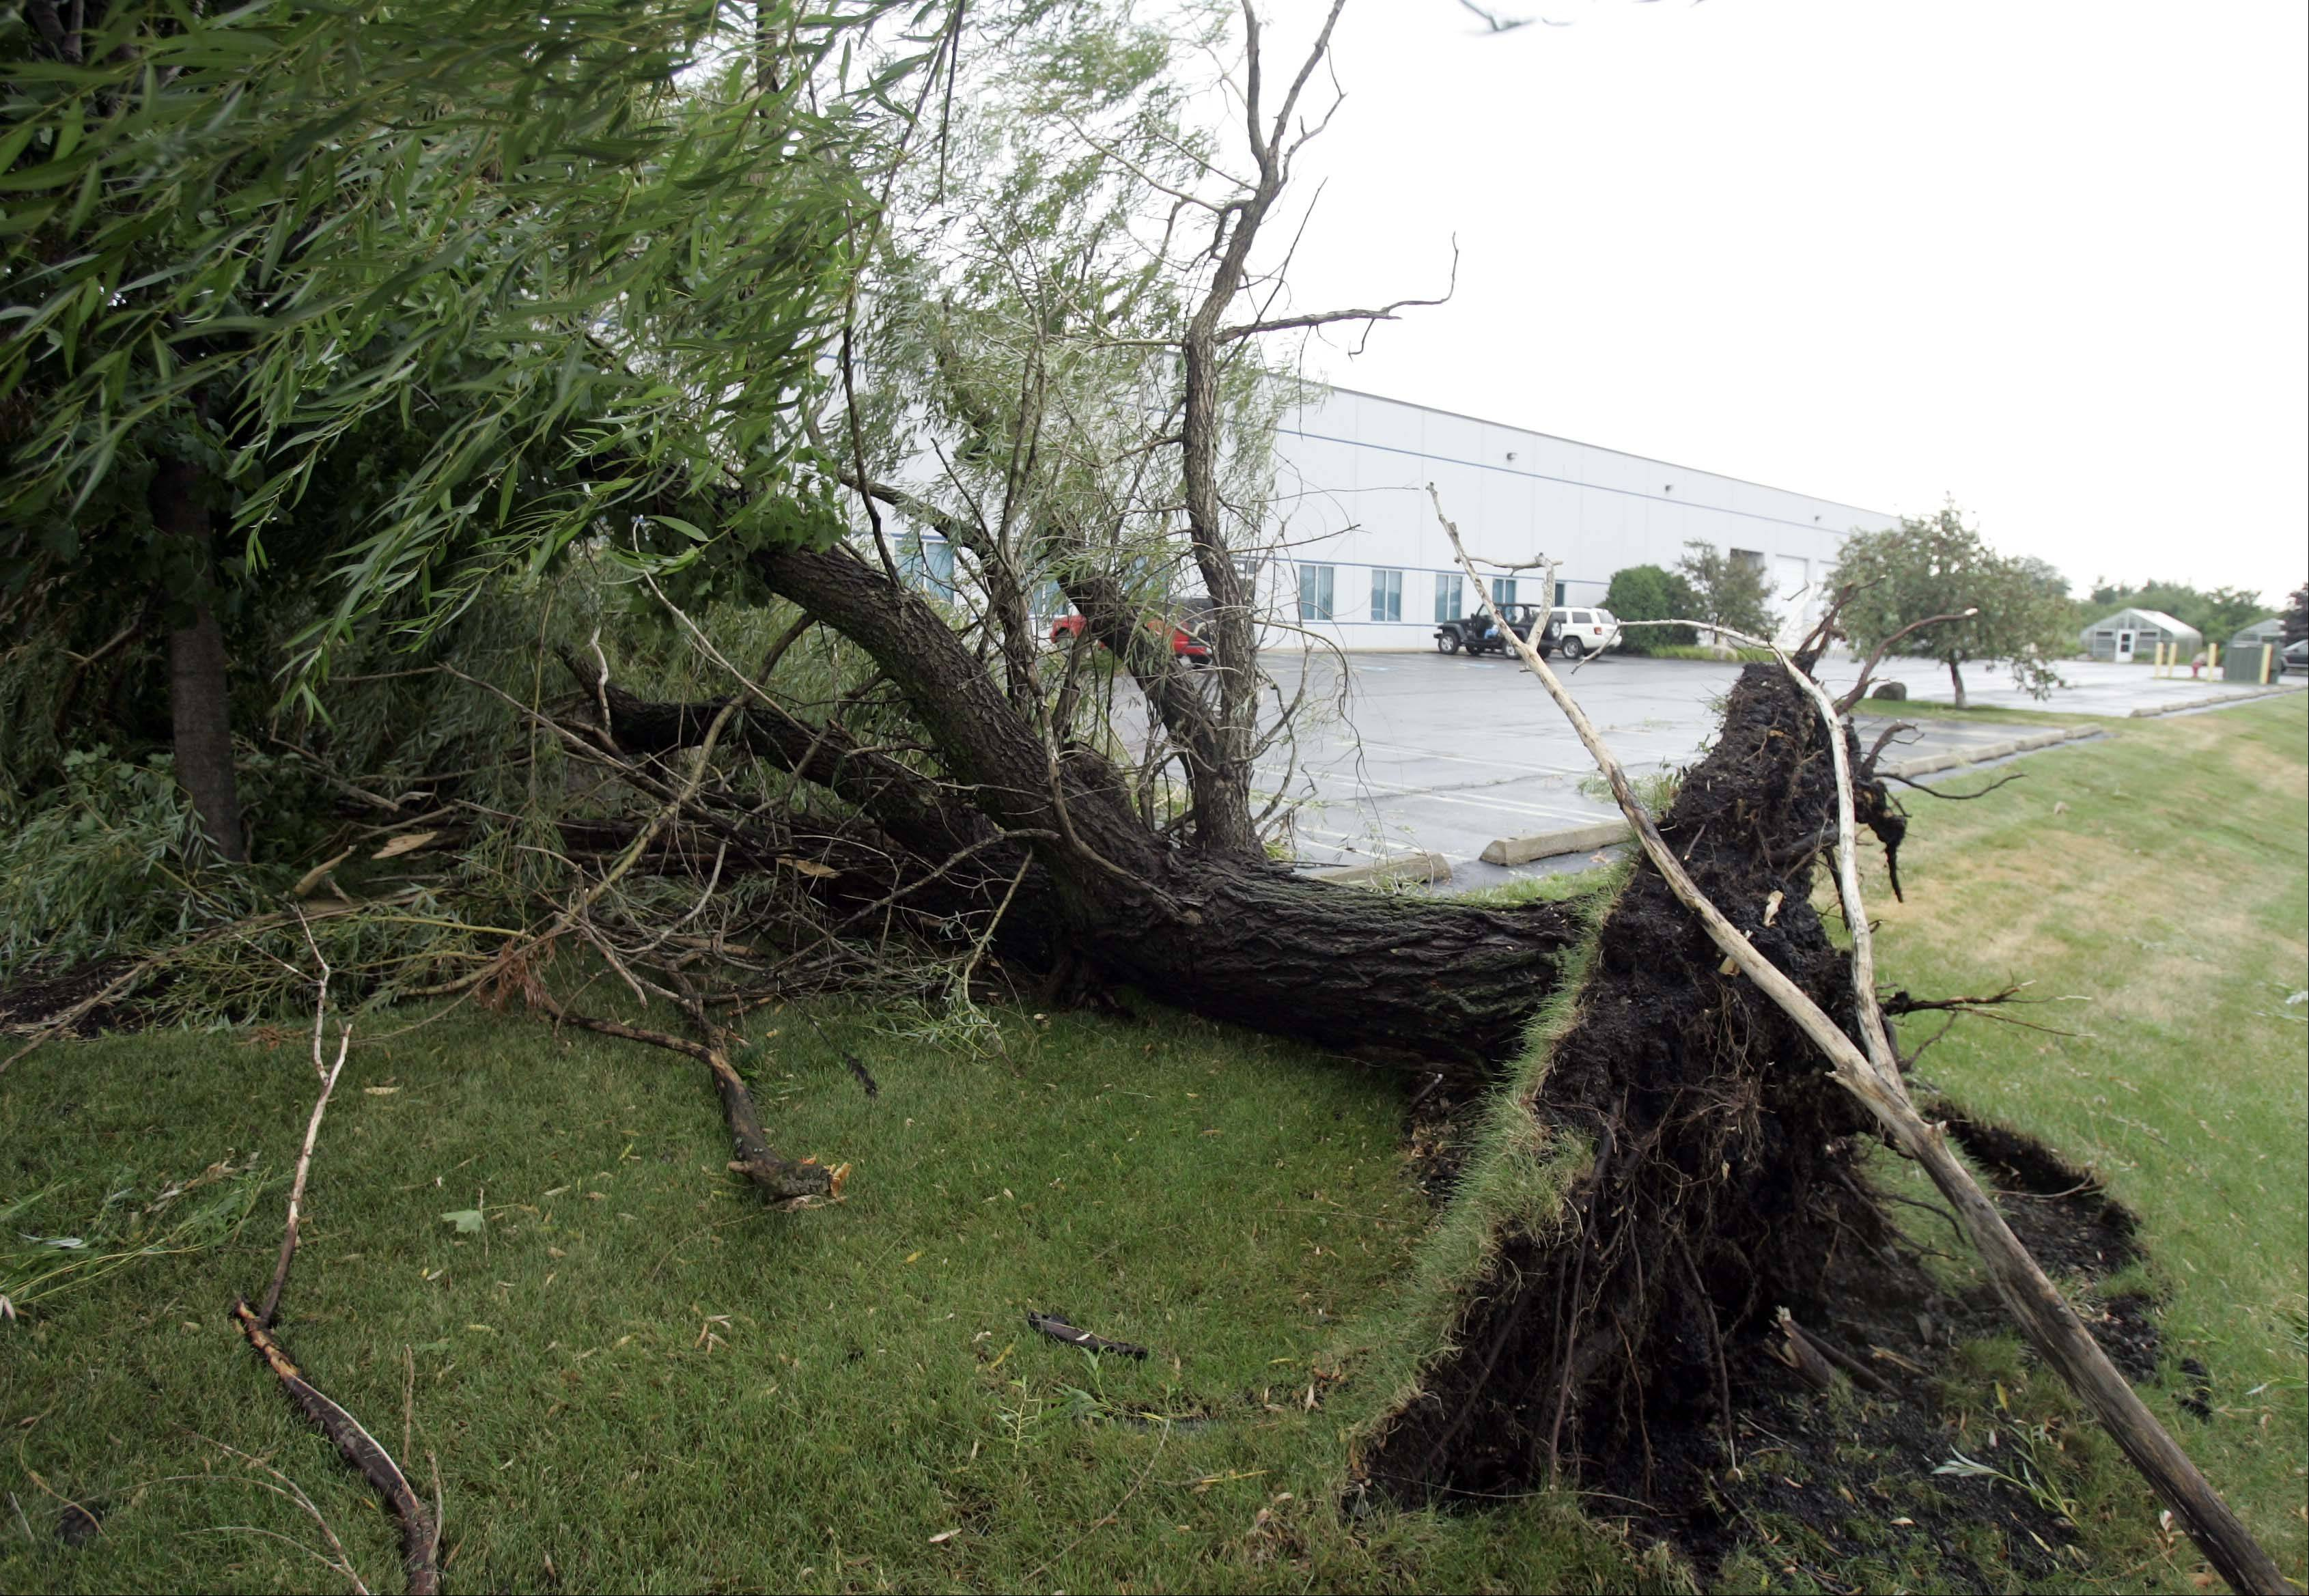 A large willow tree was completely uprooted in a Carol Stream industrial park Thursday after a large overnight storm.